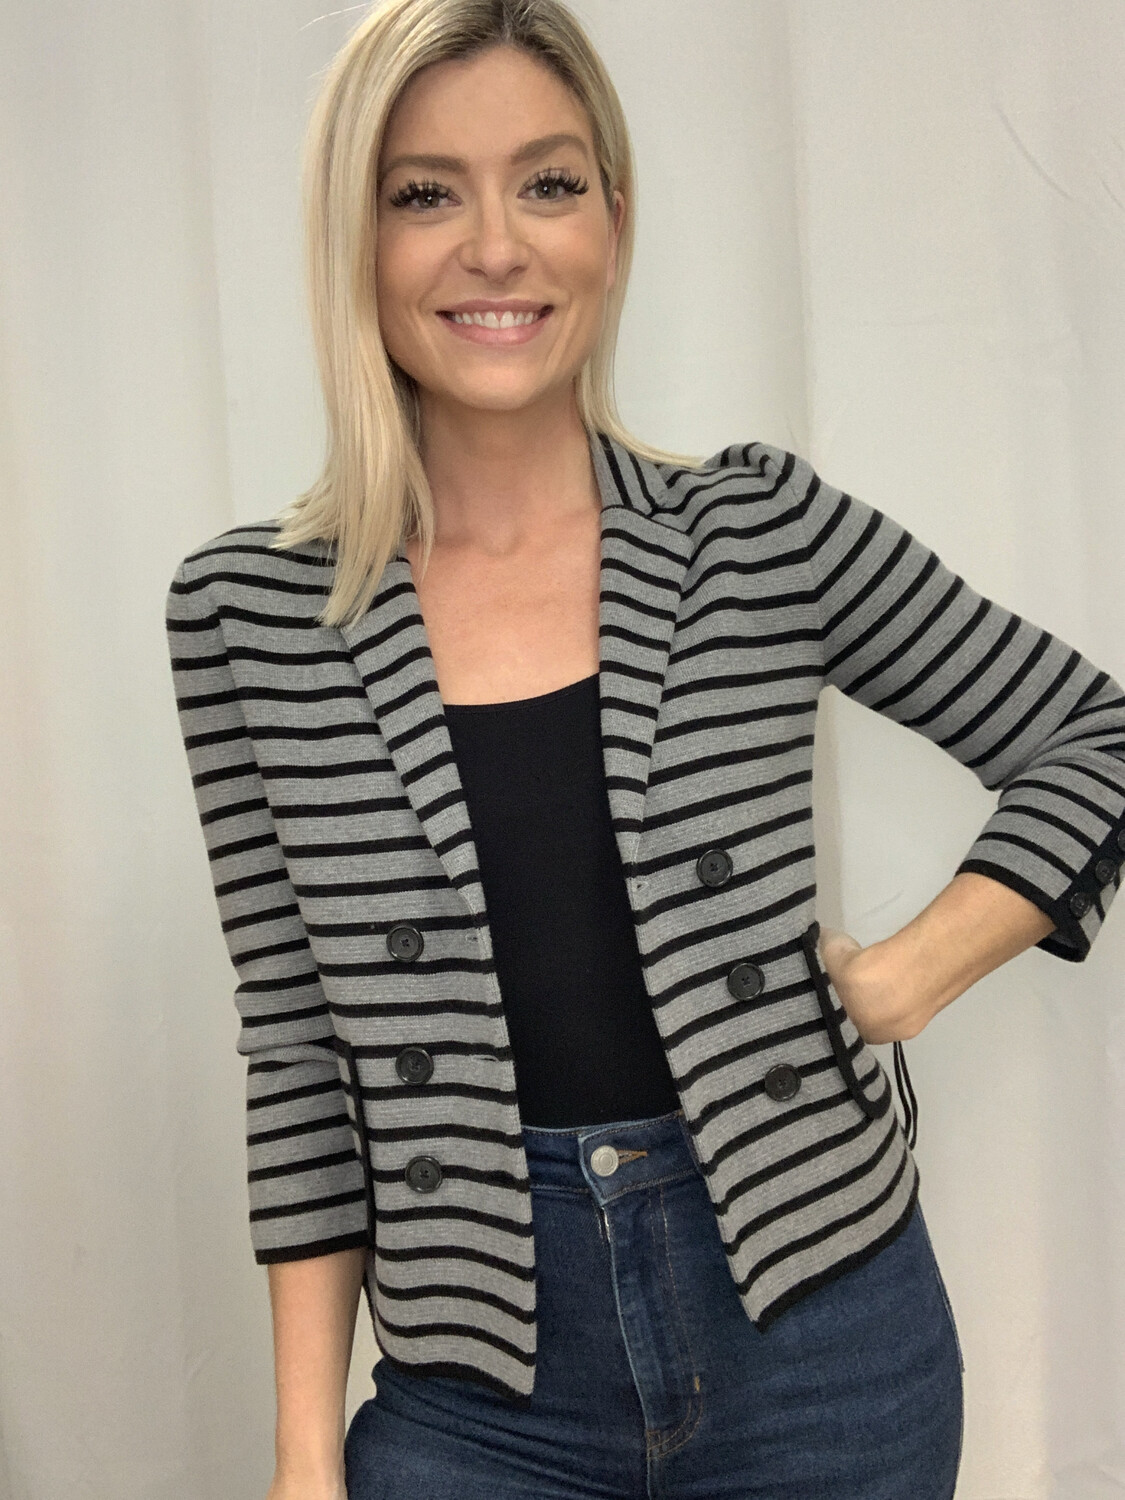 LOFT Grey & Black Striped Blazer - S